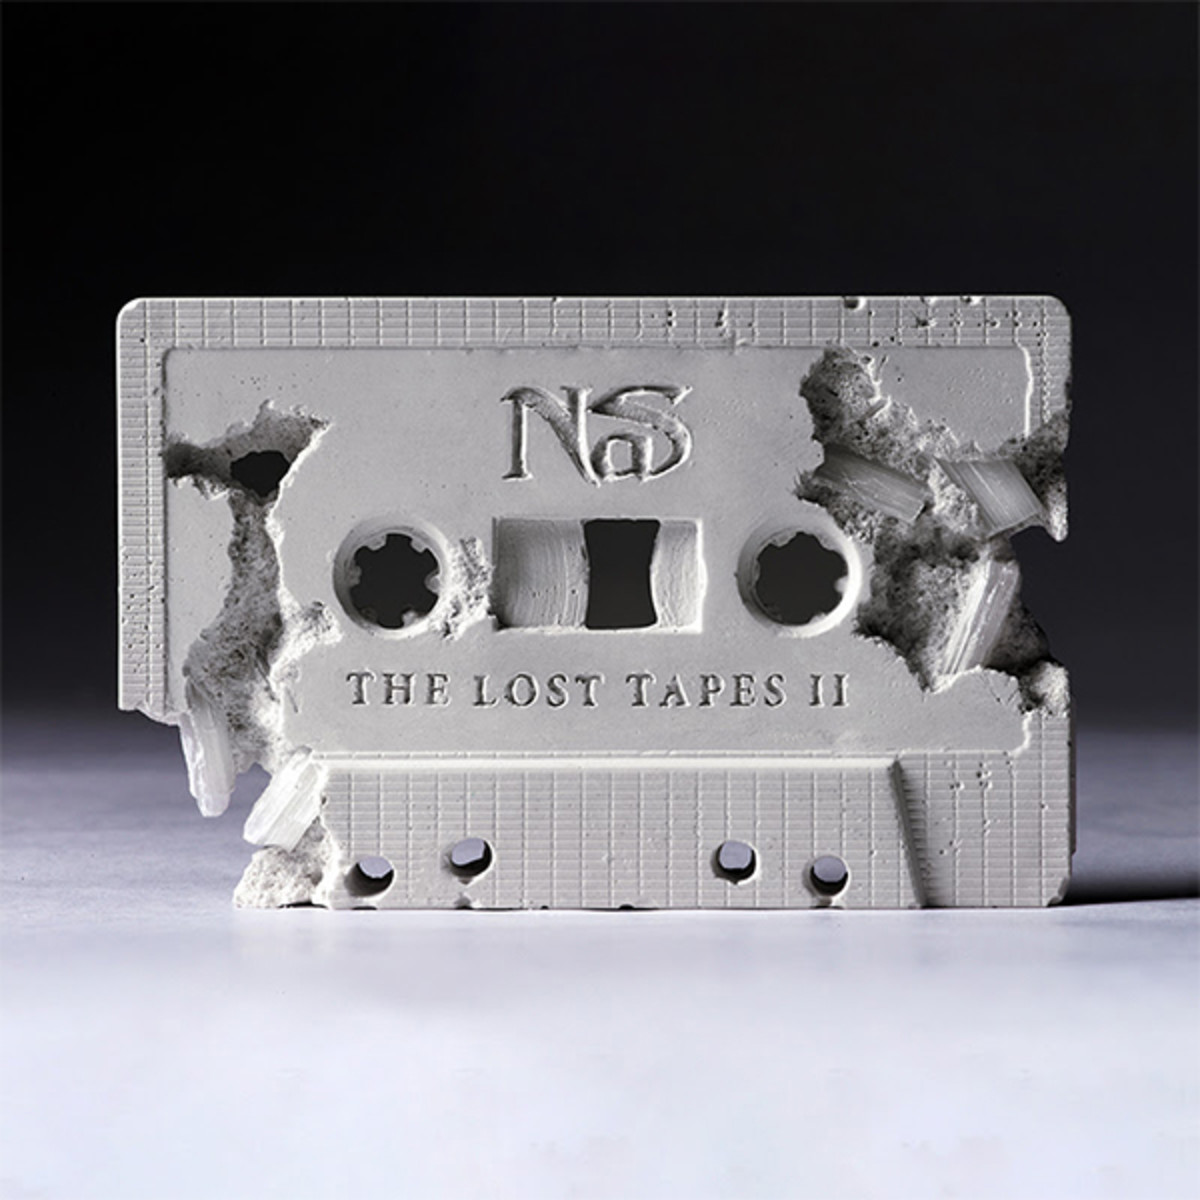 nas-the-lost-tapes-2-artwork.jpg